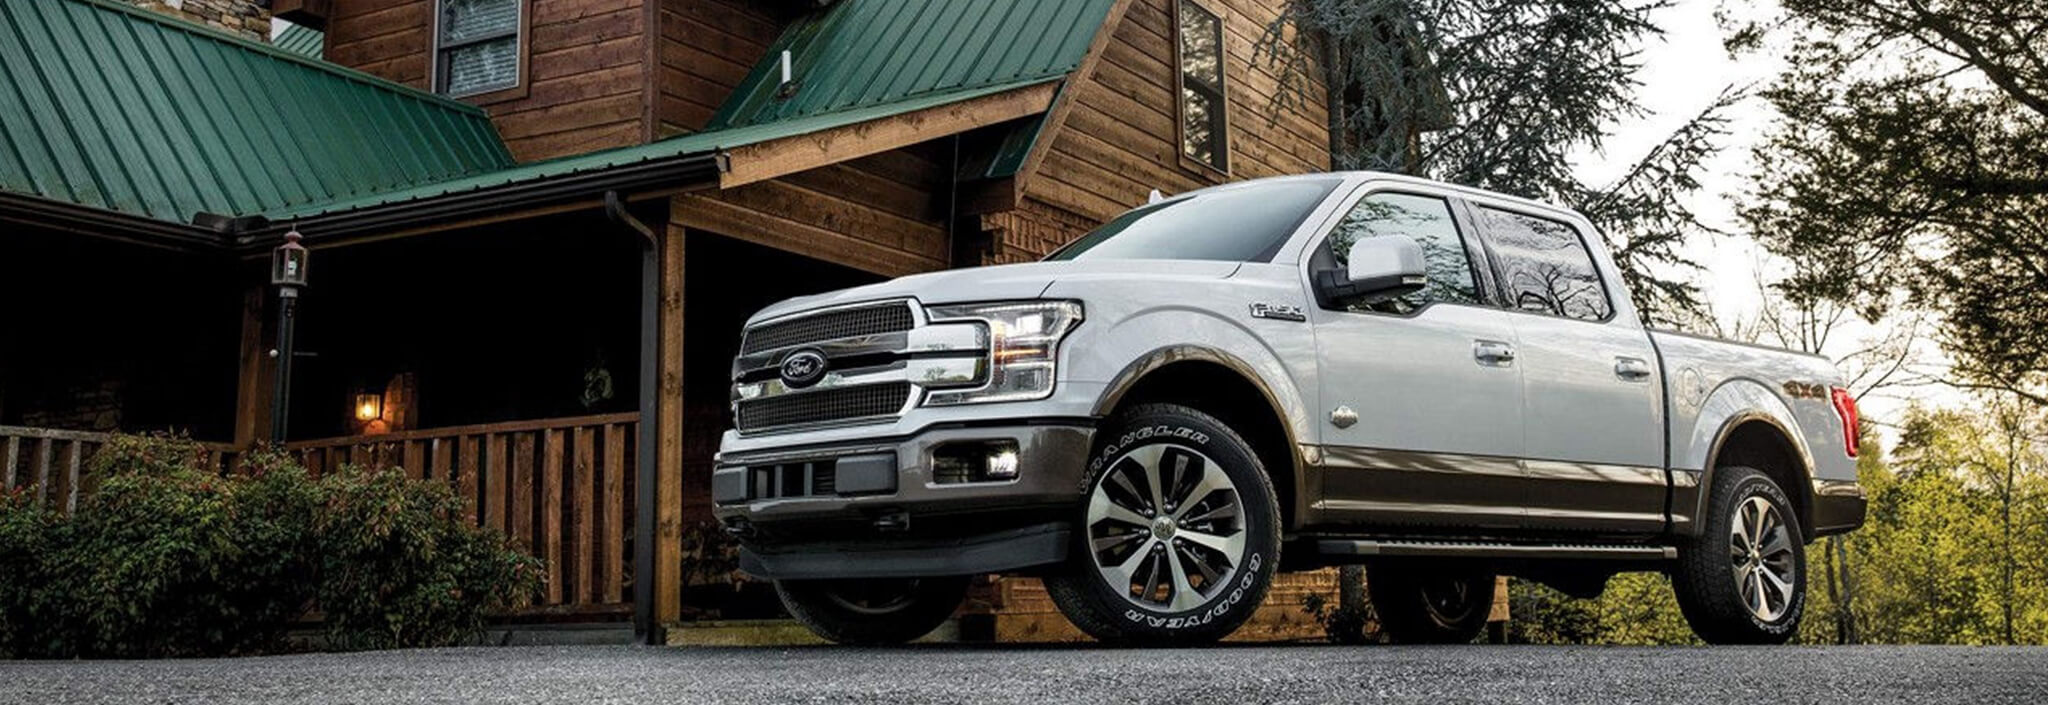 Buy A New 2018 Ford F 150 Truck Dealer Near Portage In Series